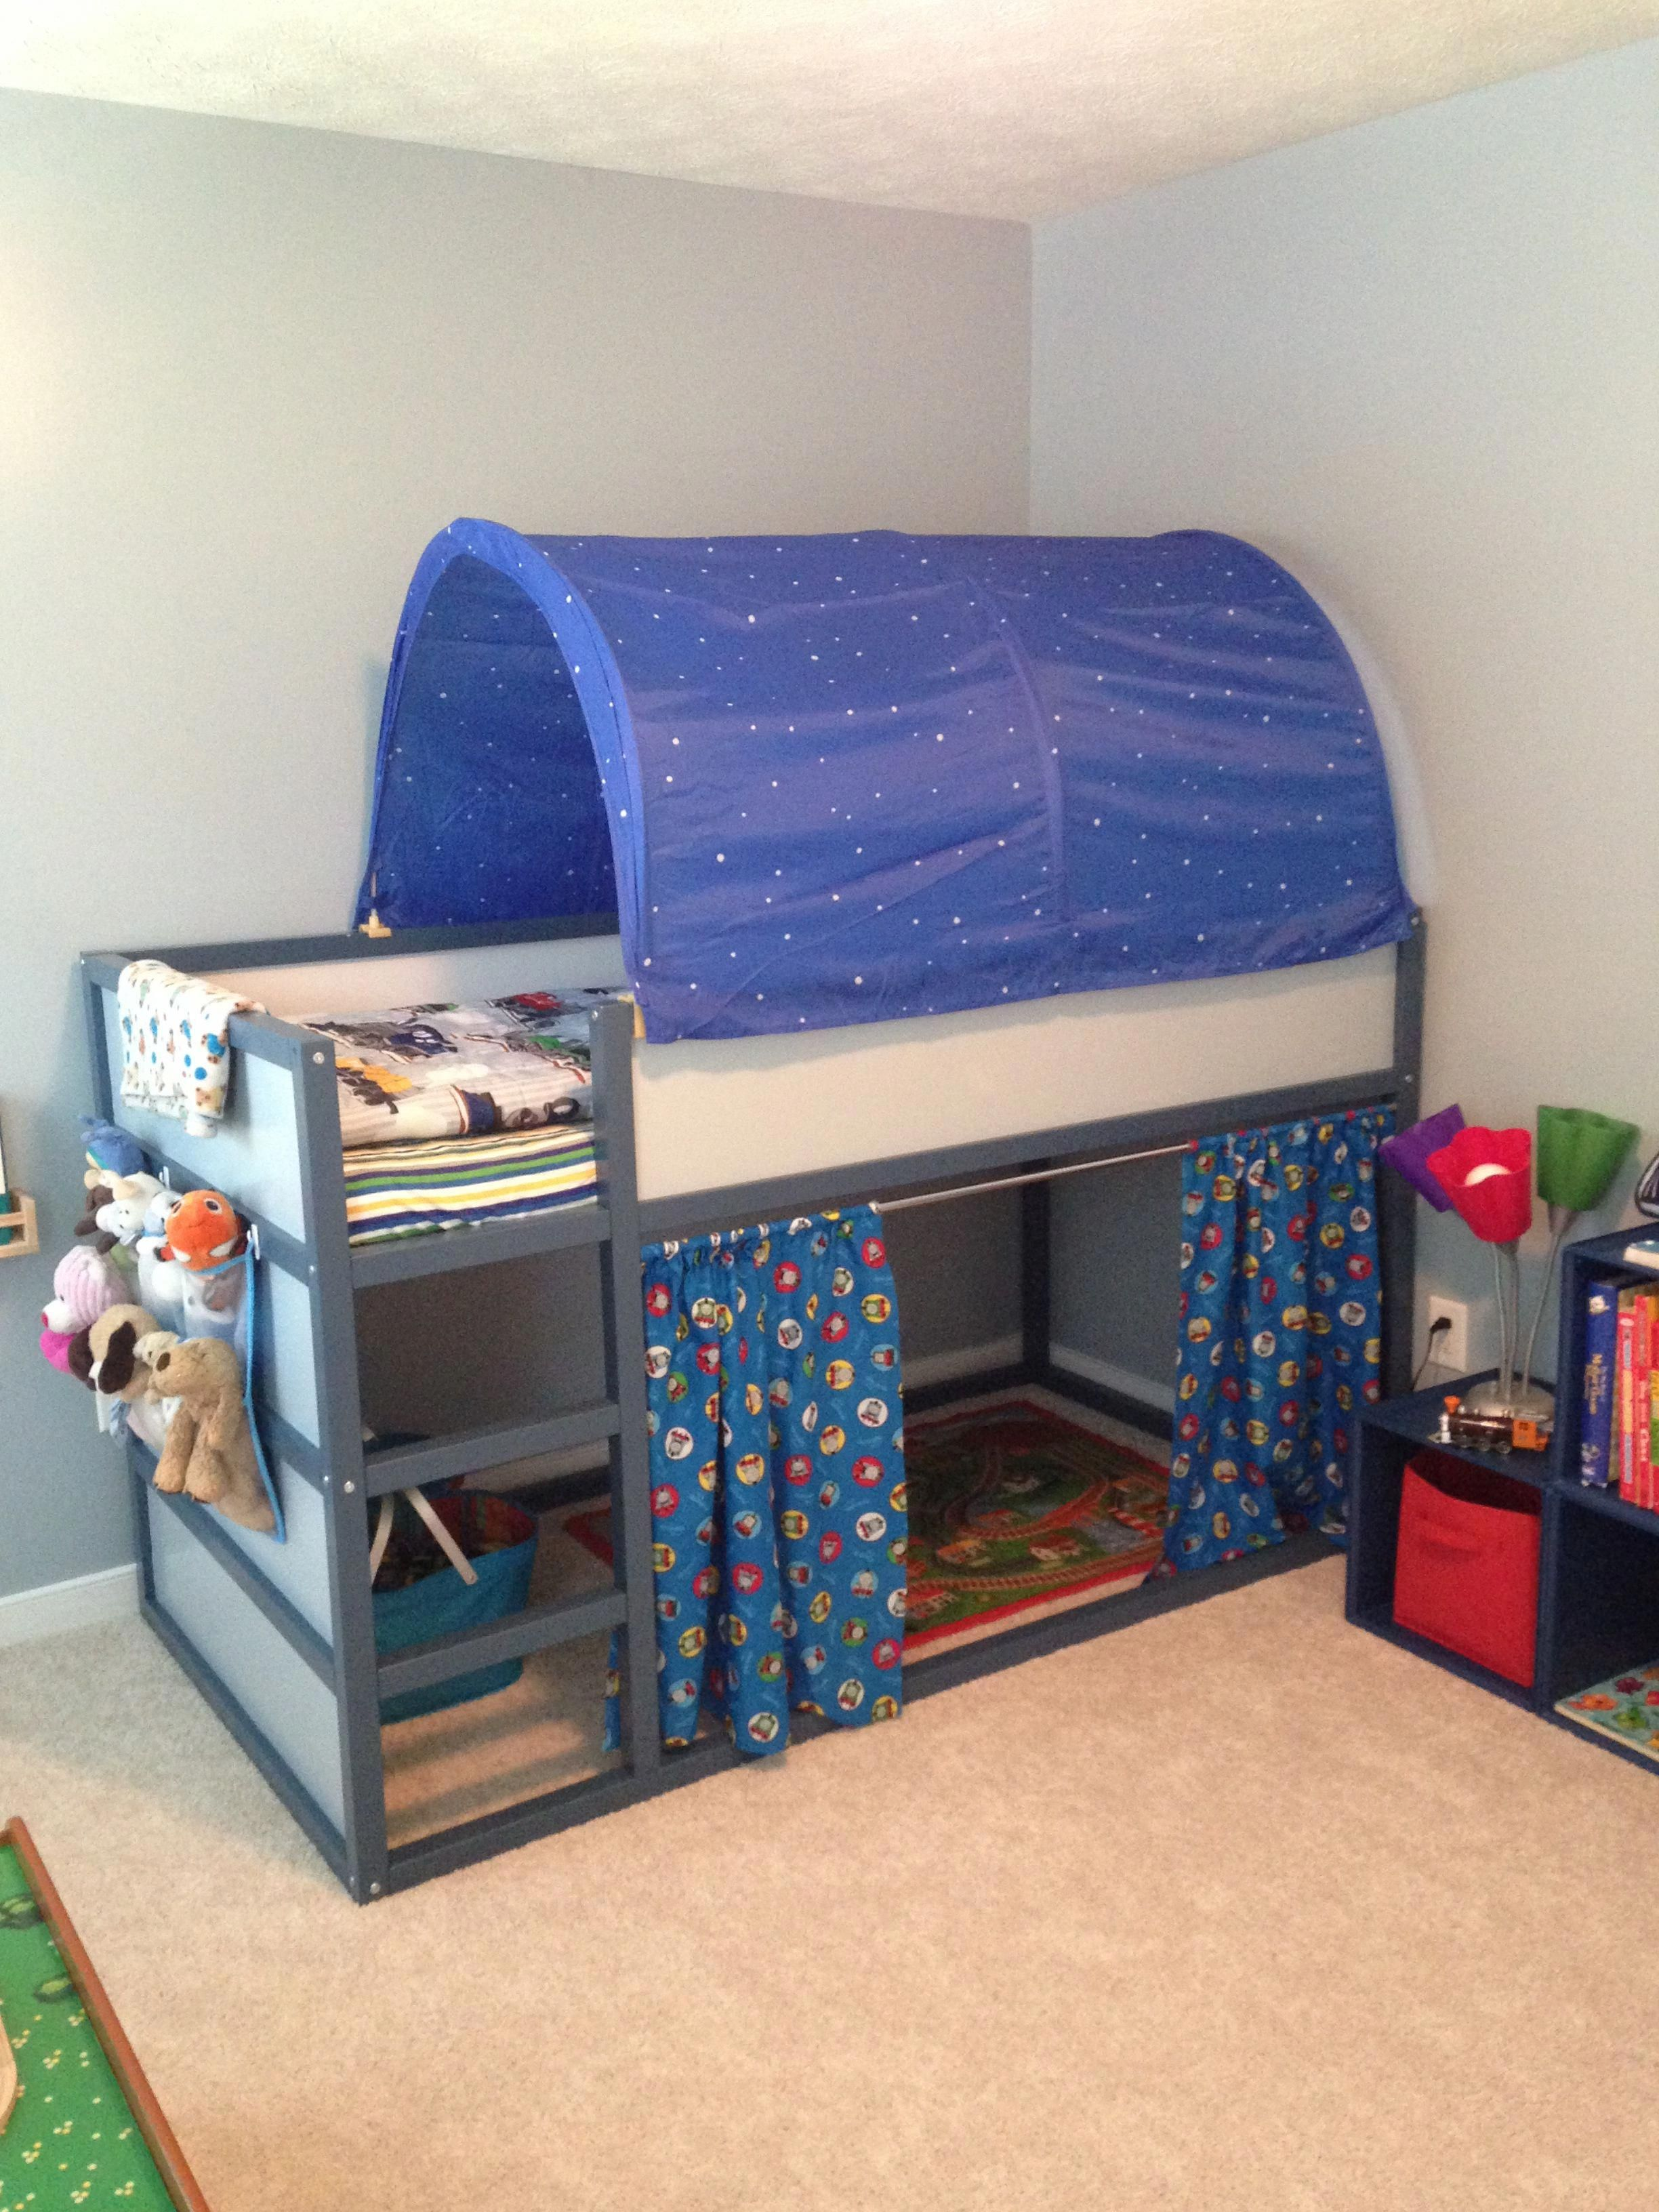 This amazing boys bedroom ideas is truly an outstanding